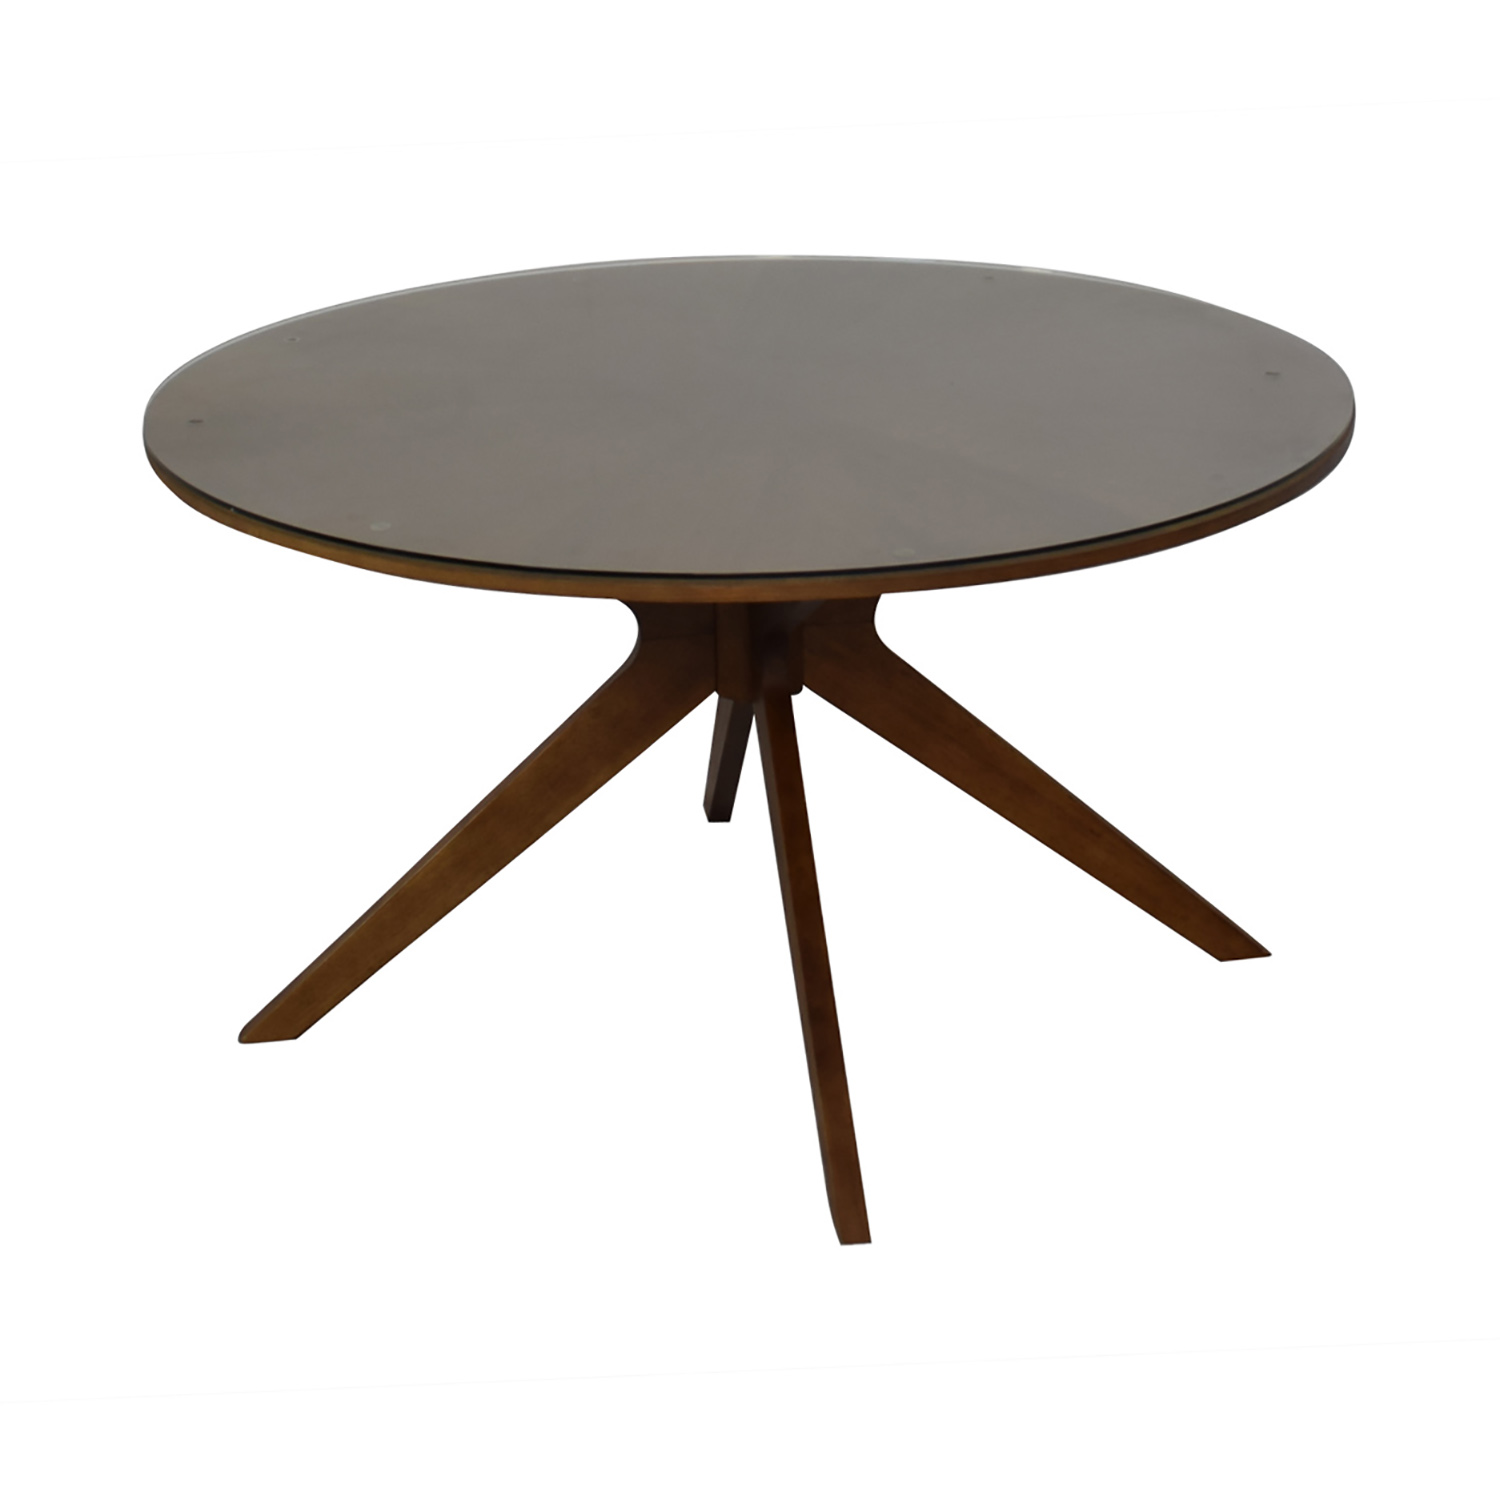 buy Article Midcentury Modern Round Table with Glass Top Article Dinner Tables